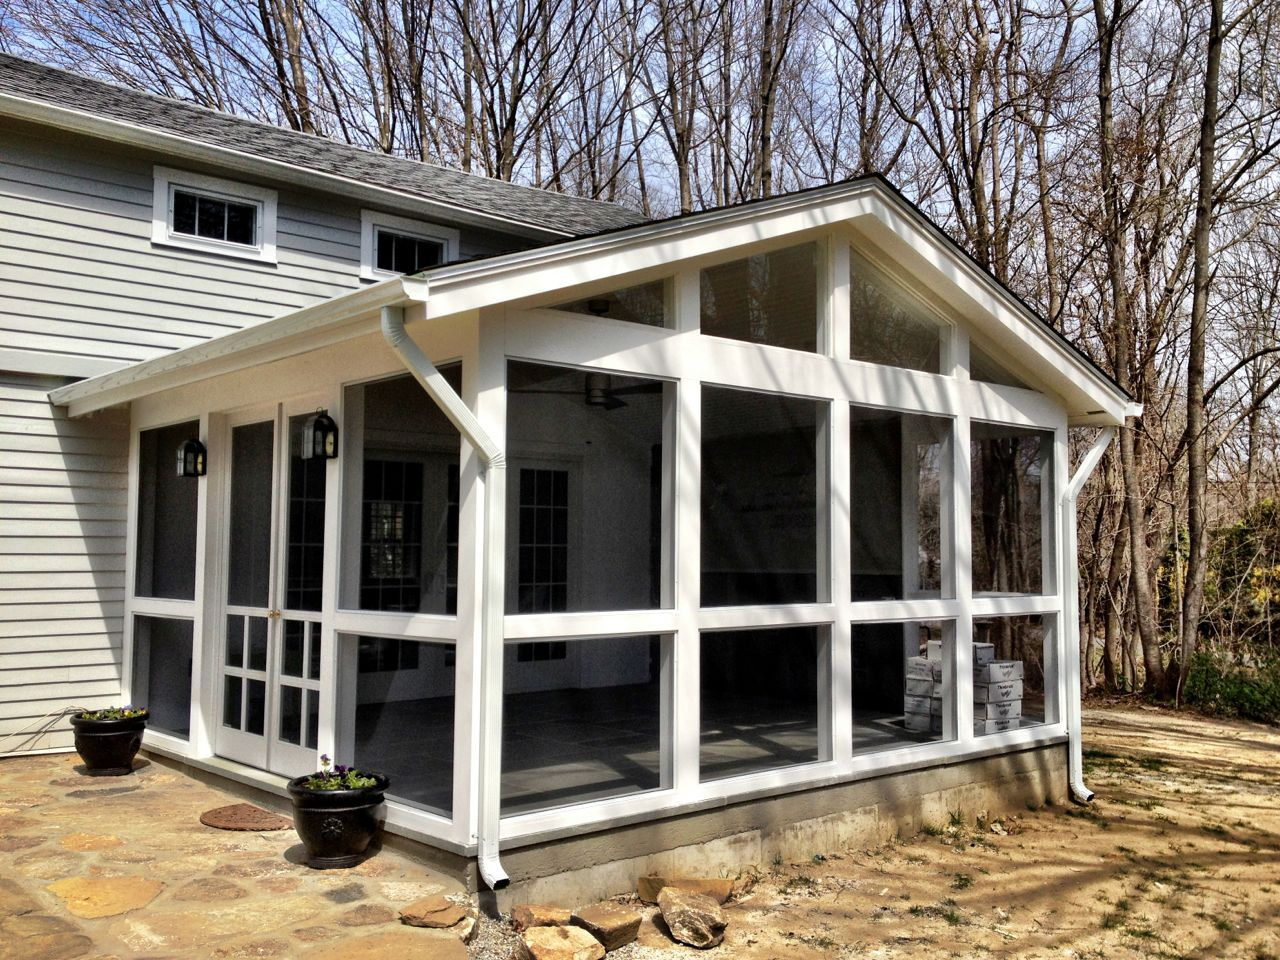 Patio Screening Ideas Screened Porch Attach It Off The Master Bedroom